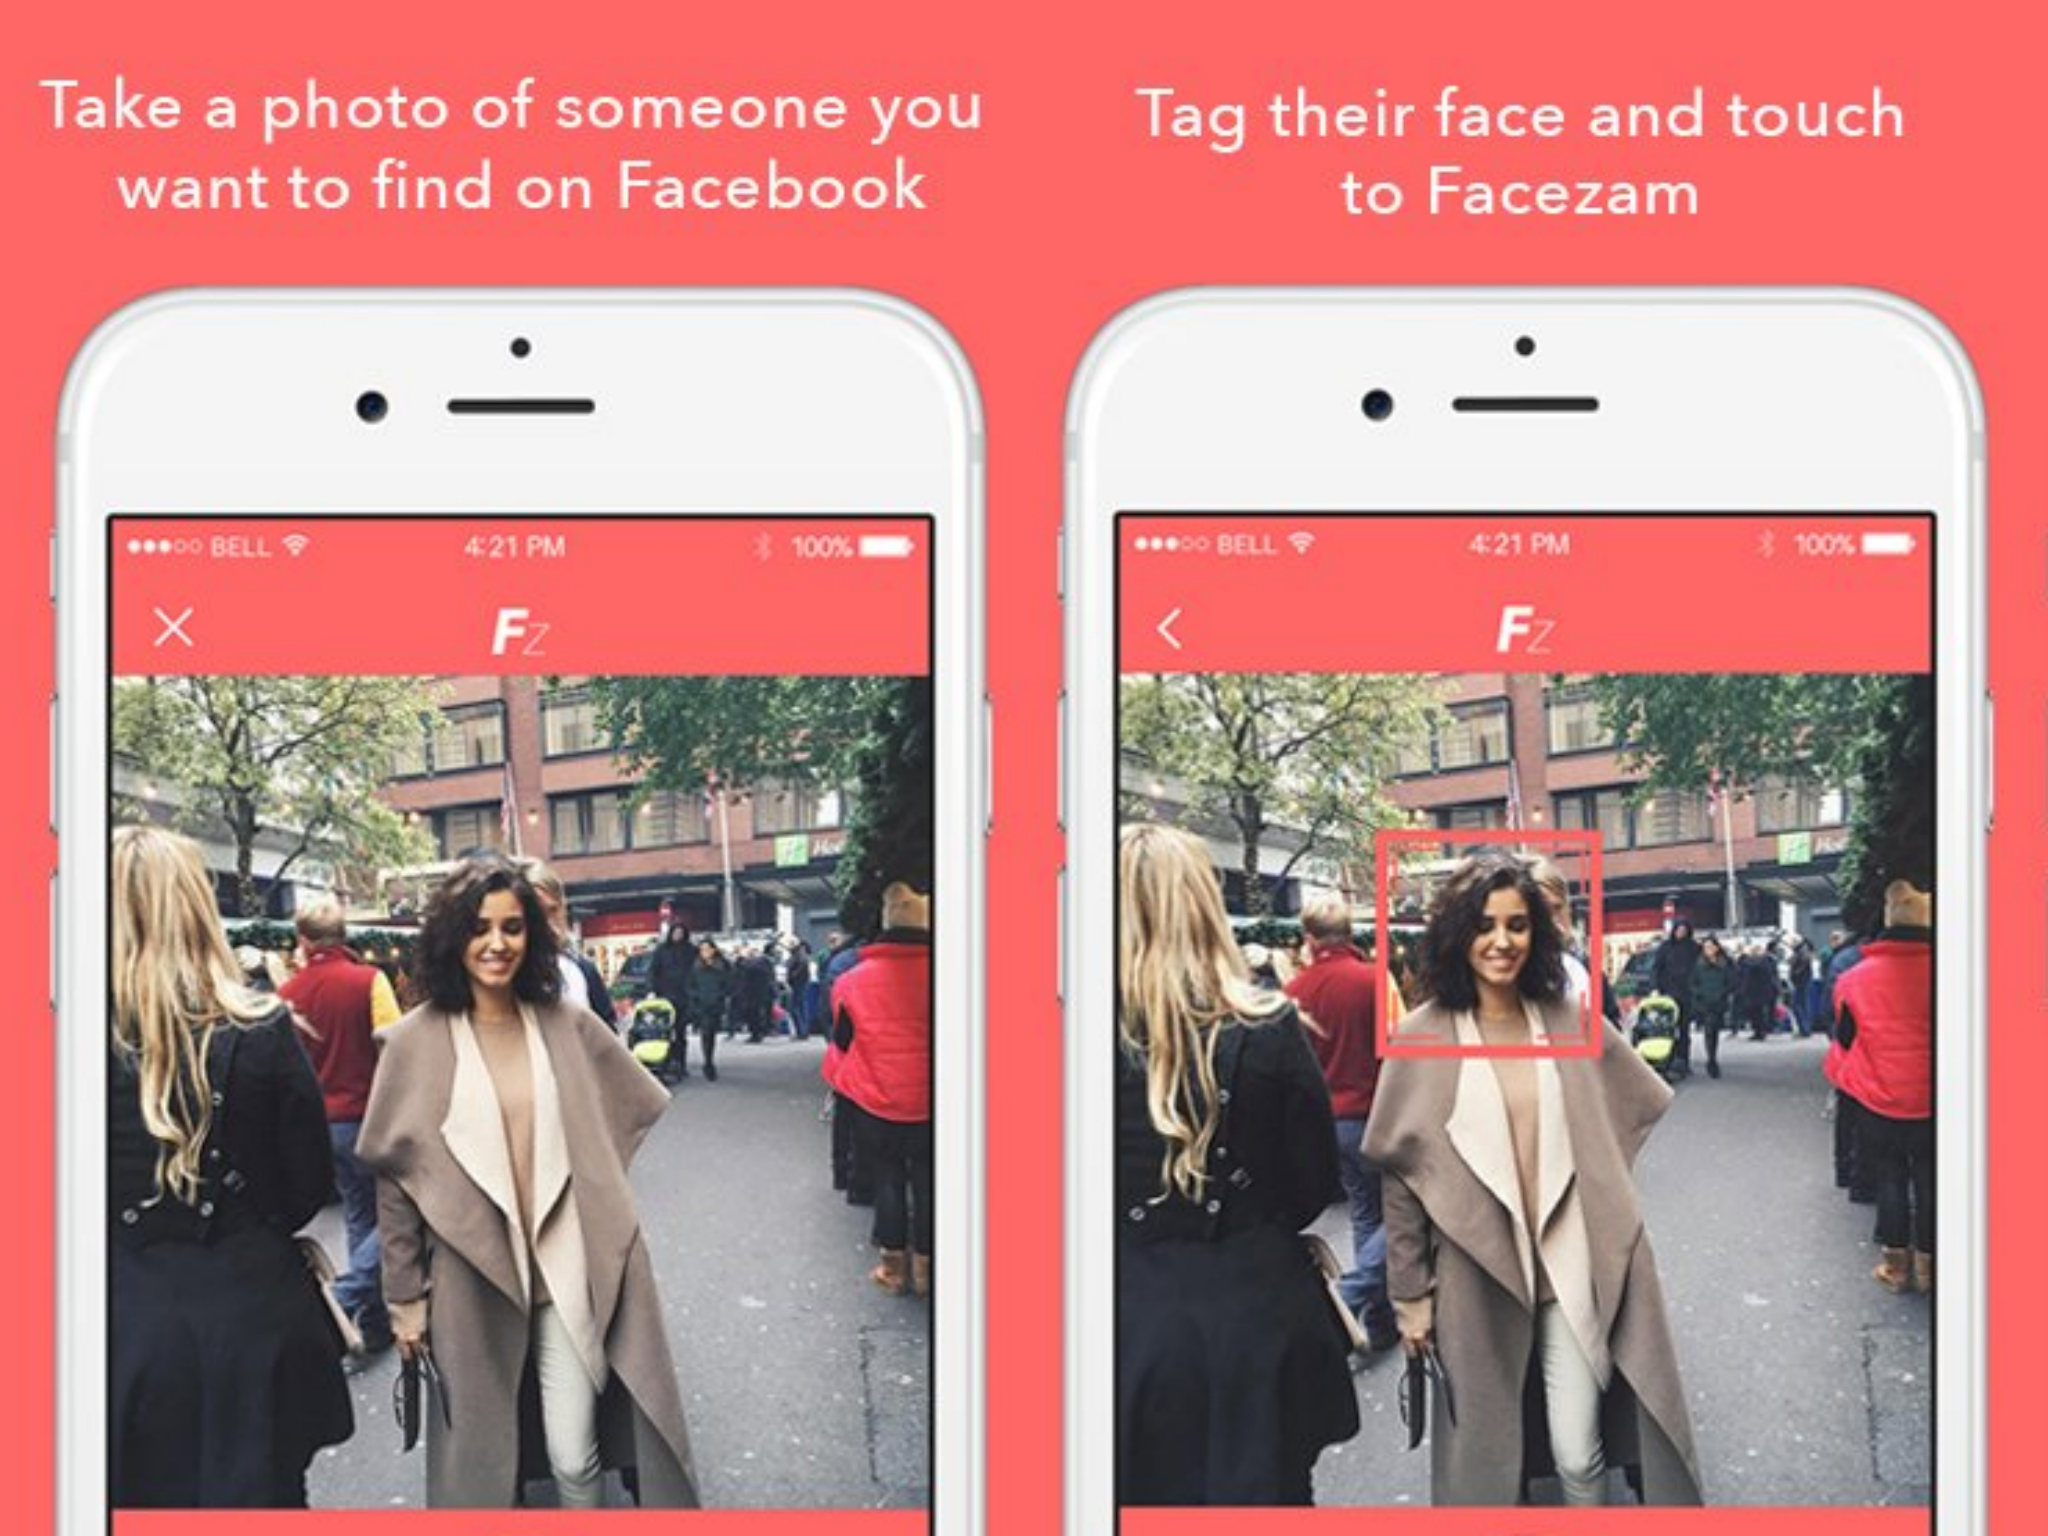 Facezam: Creepy app claiming to match strangers' photos to